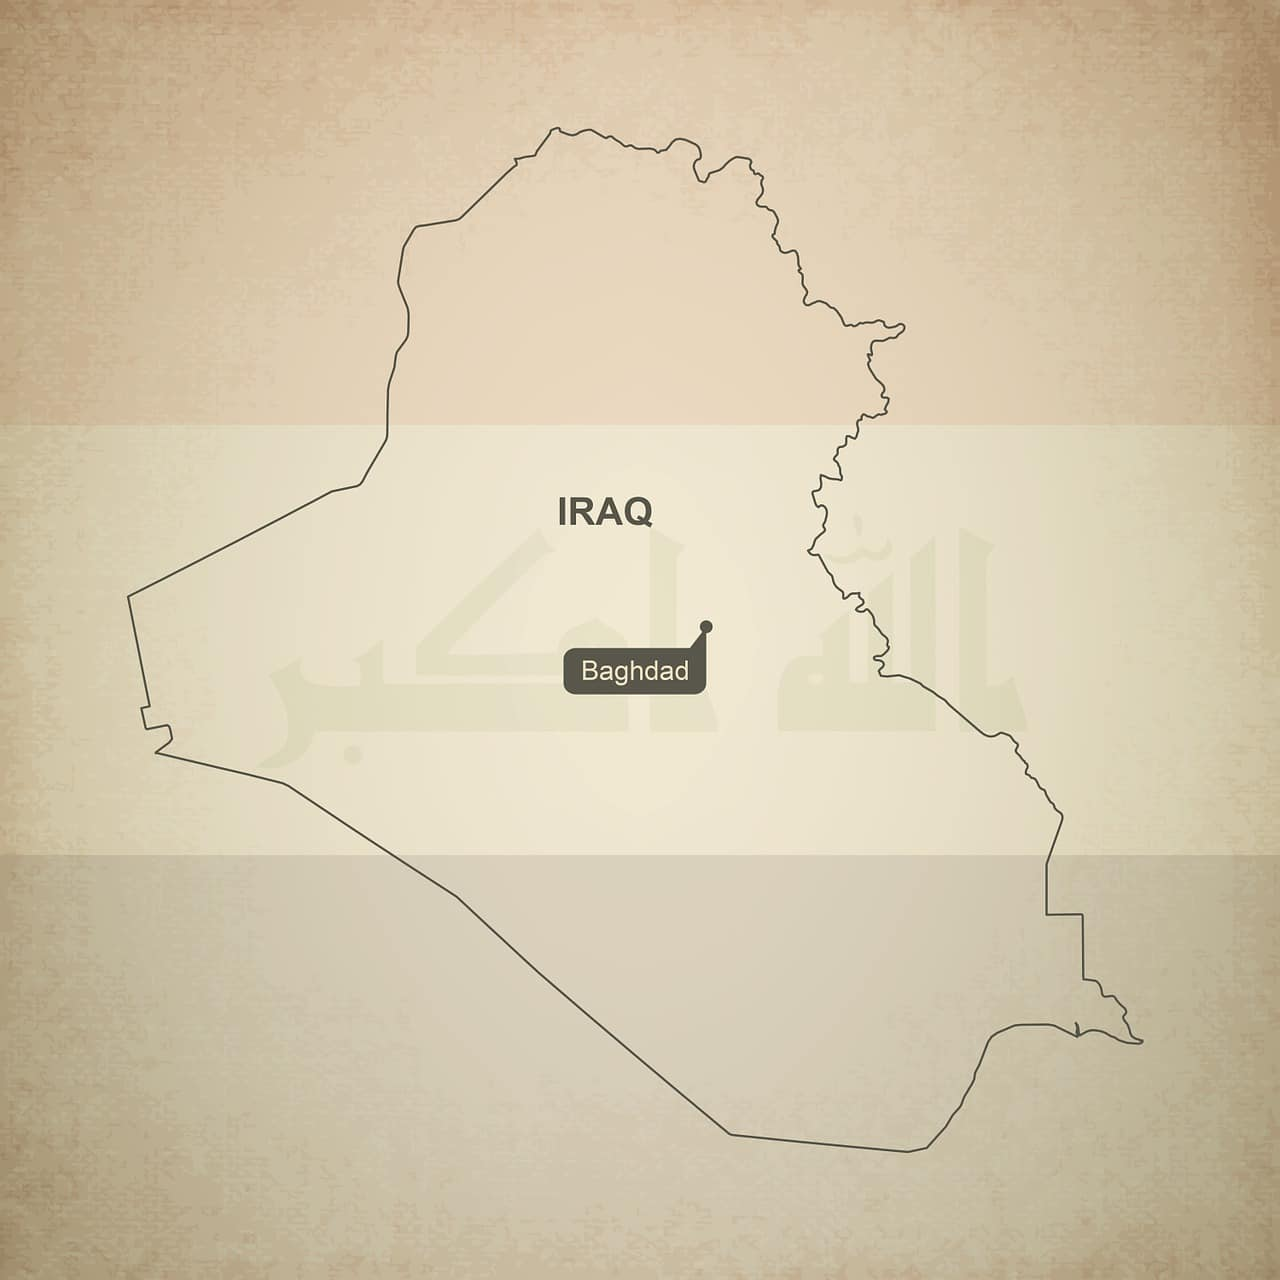 Russia announces the resumption of visas for Iraqi citizens!